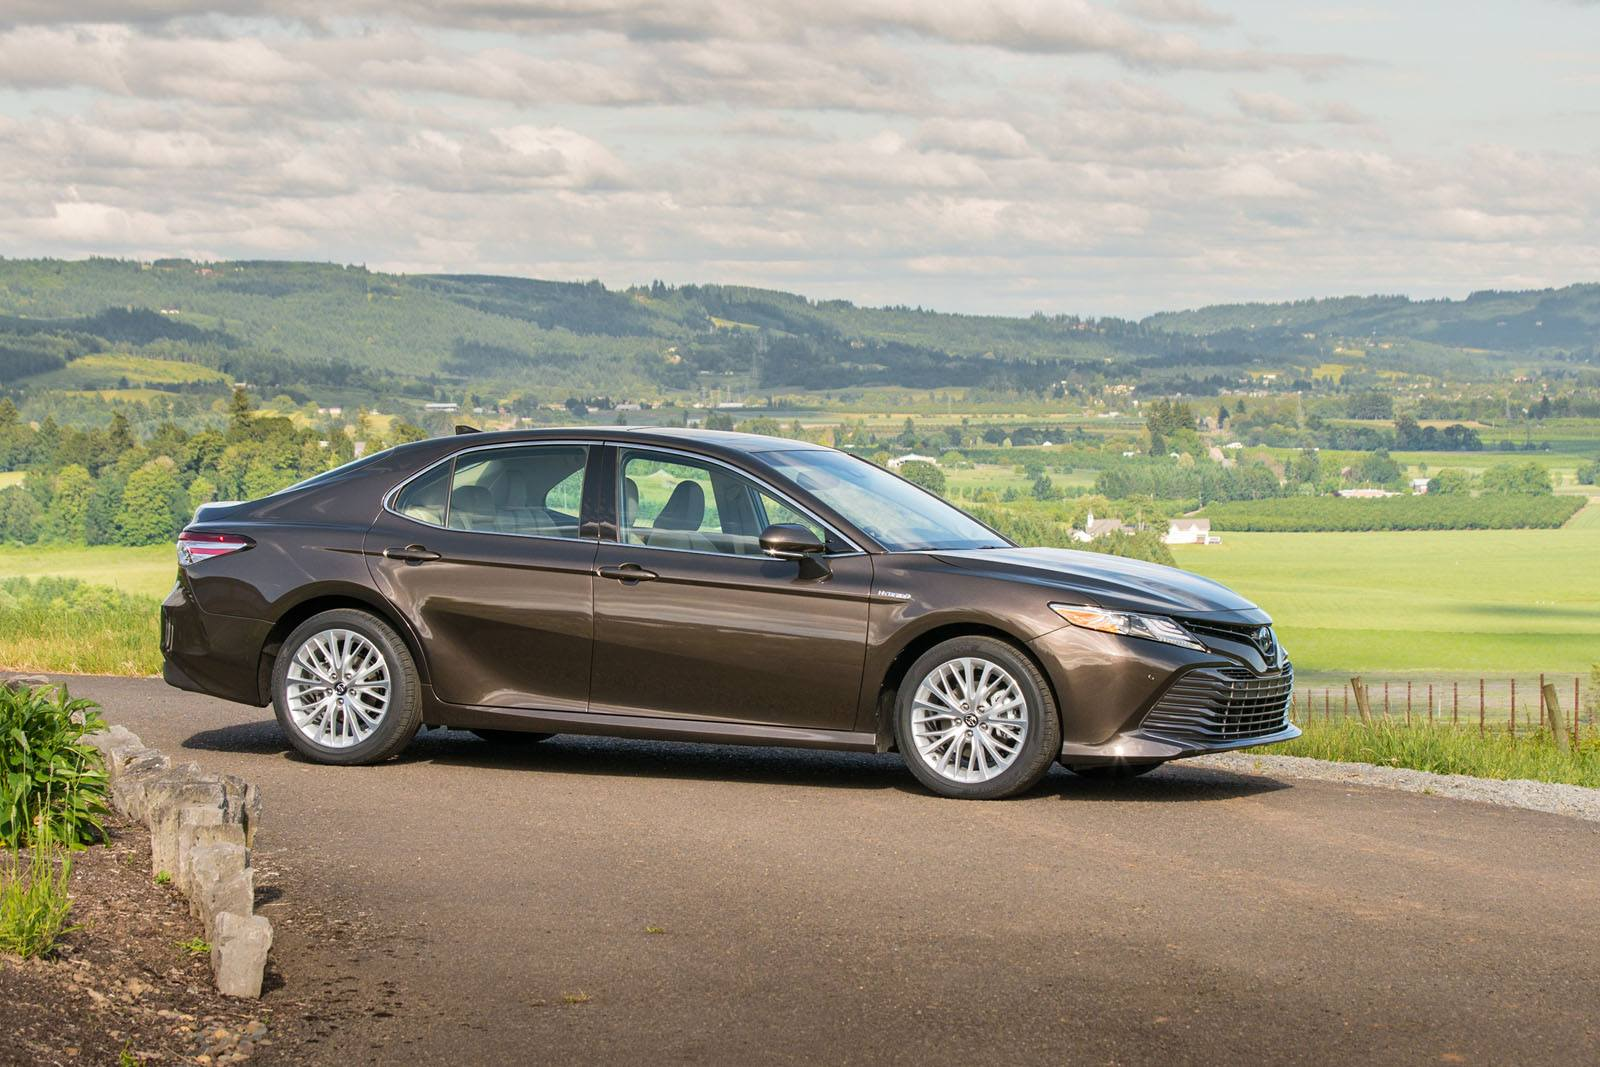 2018 toyota camry hybrid review news. Black Bedroom Furniture Sets. Home Design Ideas